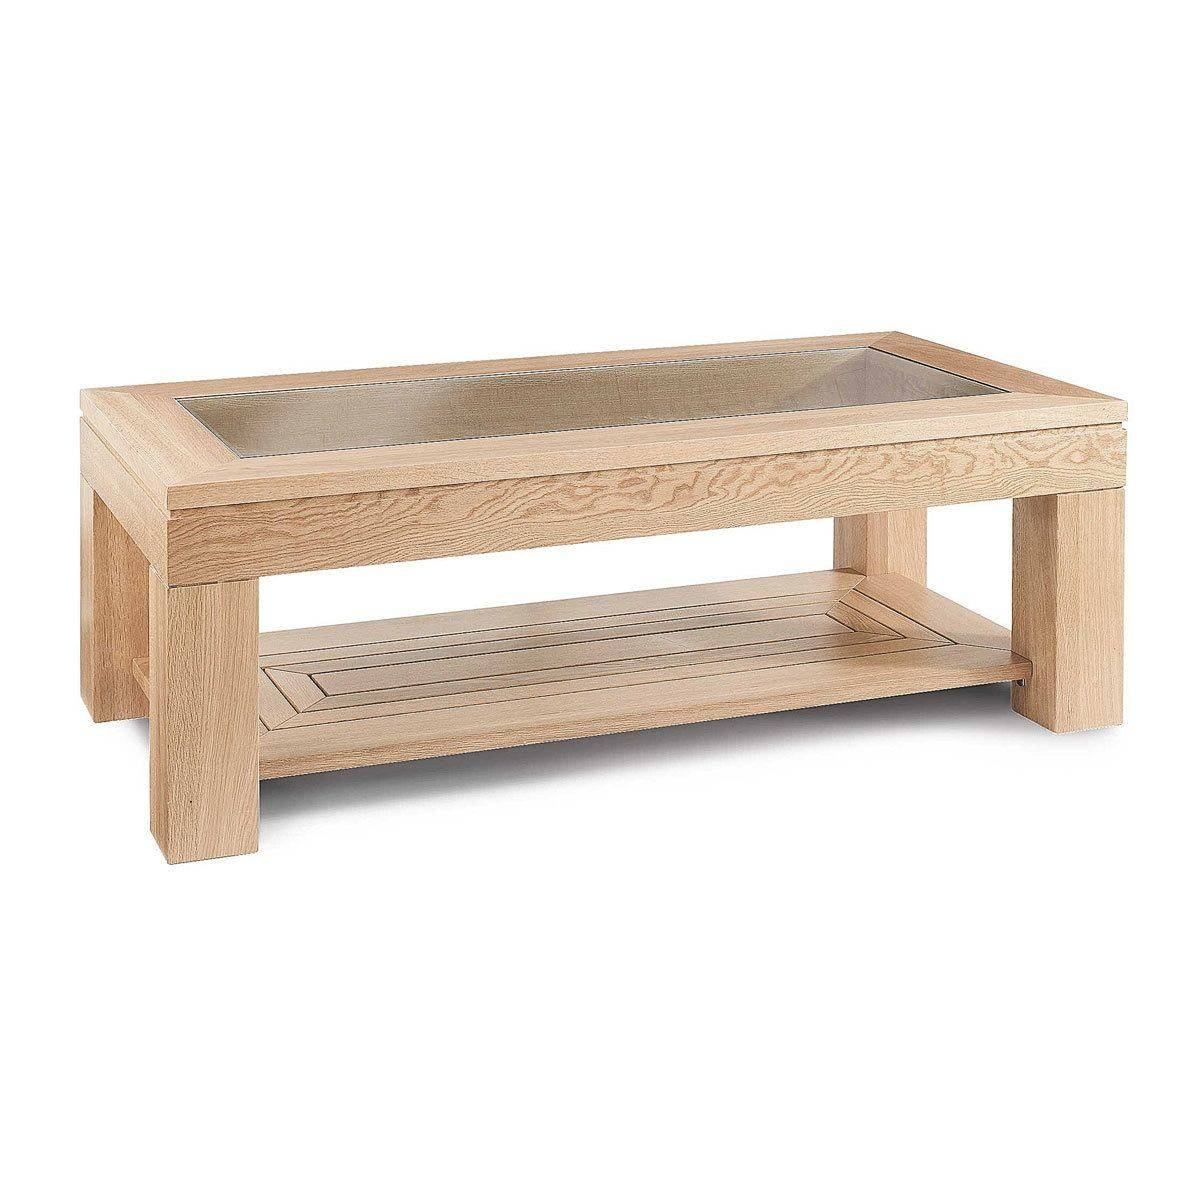 Puzzle Coffee Table | M Burrows Furniture World with regard to Puzzle Coffee Tables (Image 27 of 30)